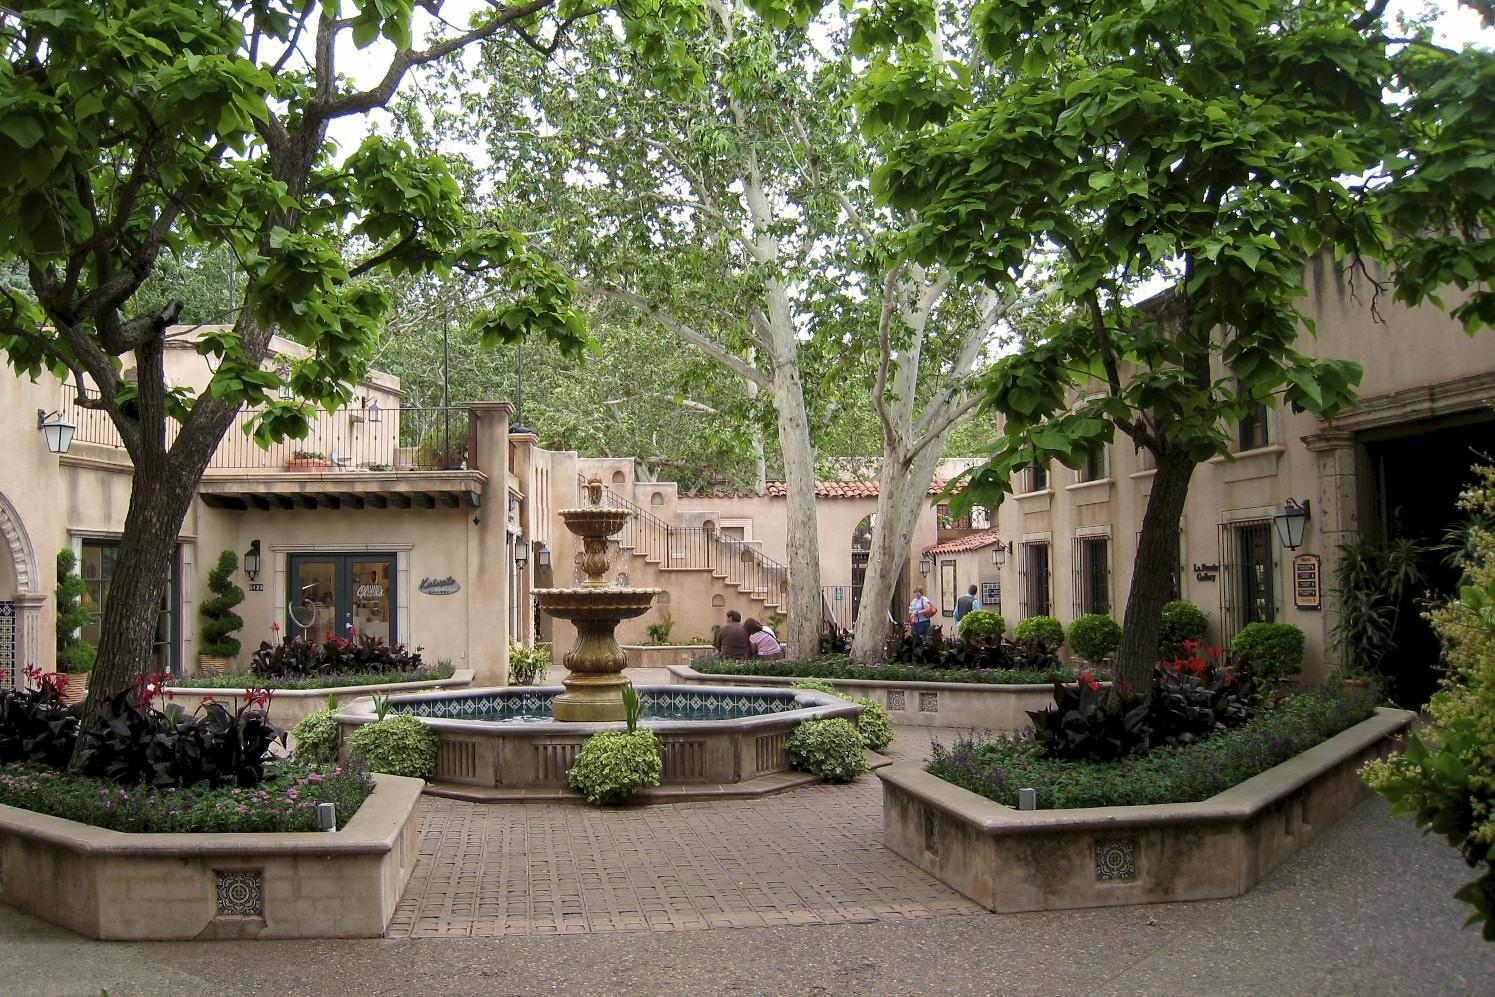 Tlaquepaque plaza for Michaels crafts pittsford plaza